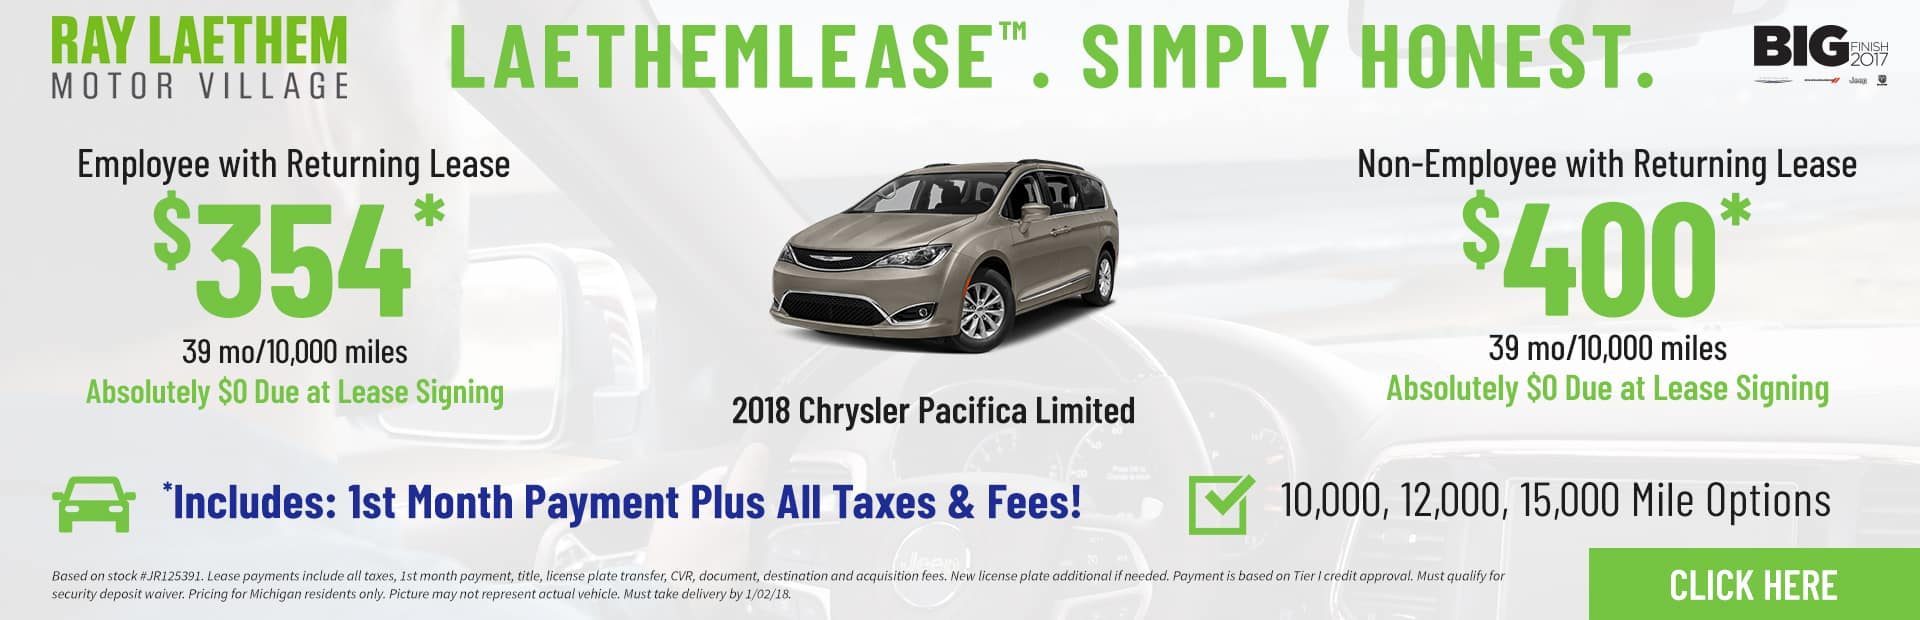 Pacifica Limited LaethemLease